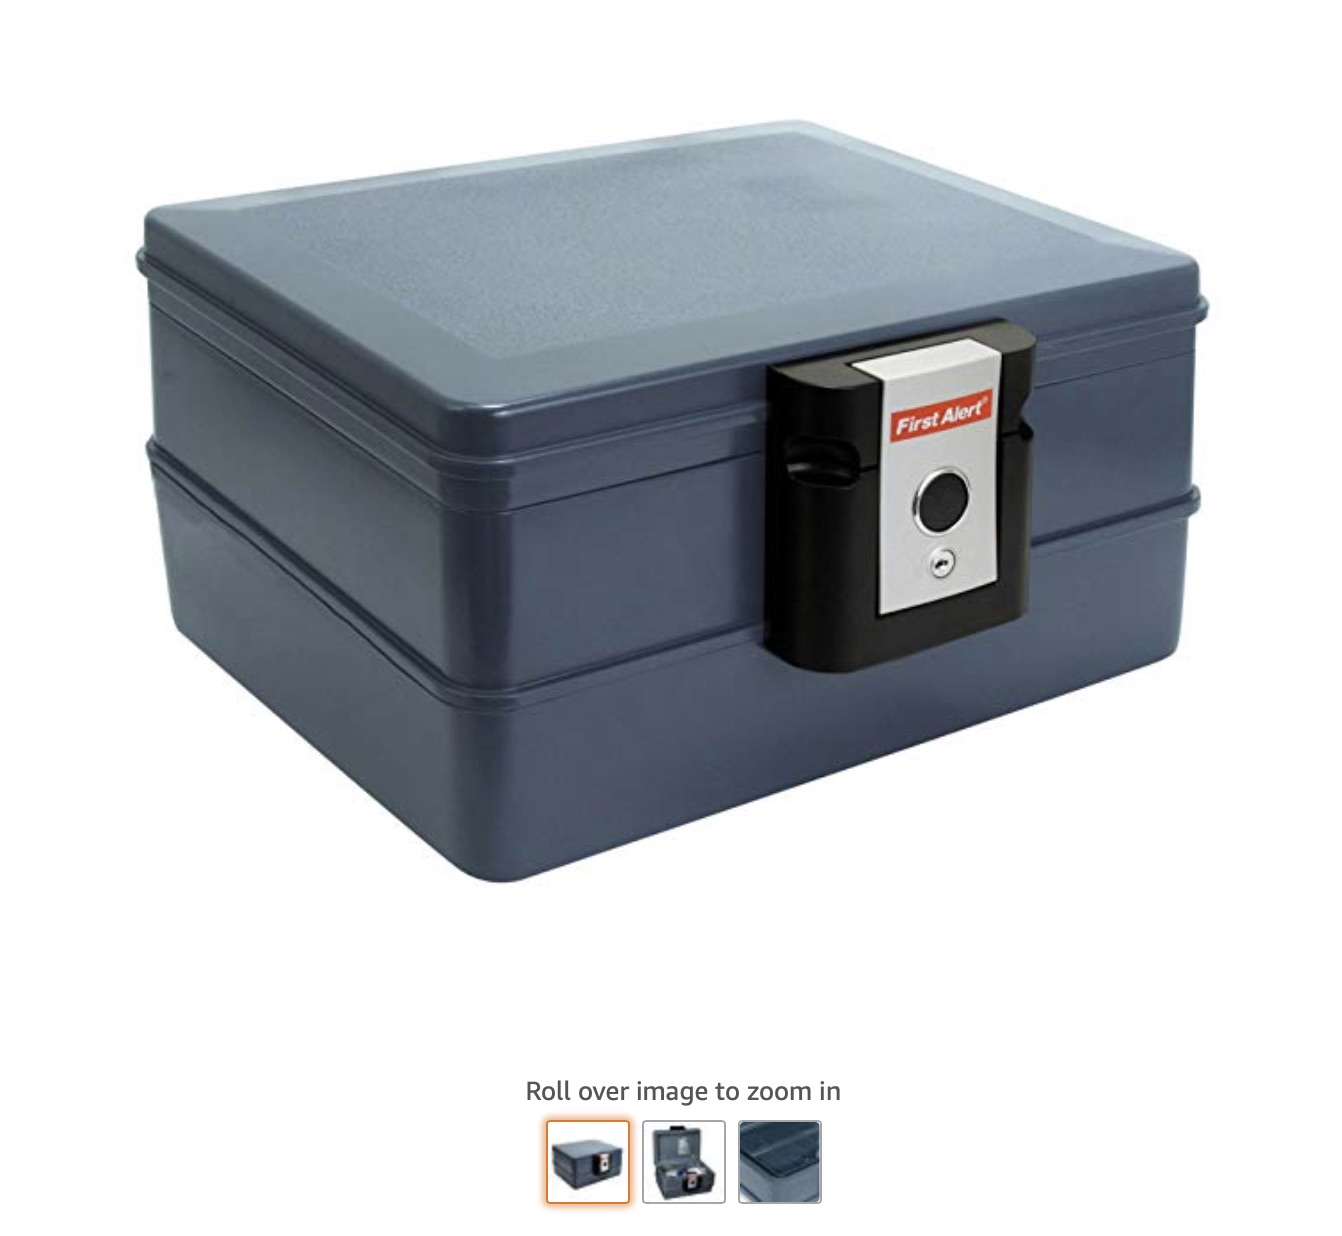 6 First Alert 2030F 0.39 Cubic Feet Fire and Water Safe, Grey copy